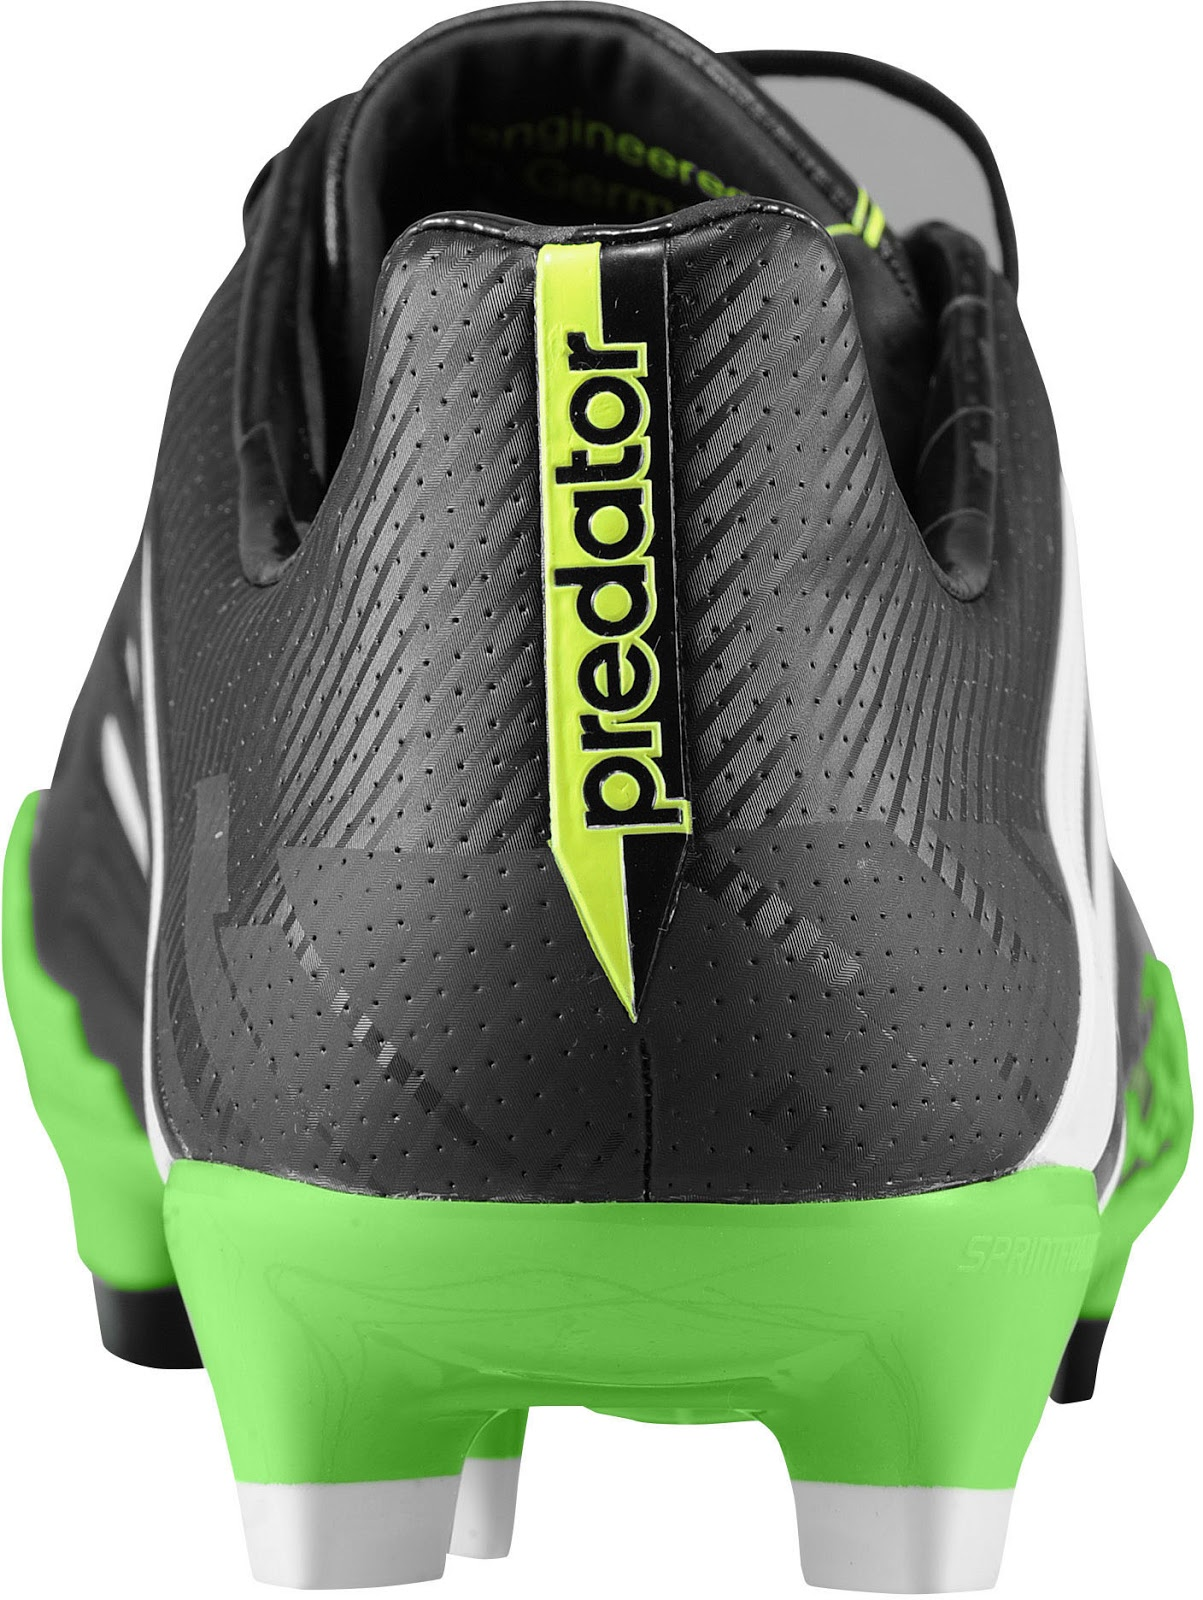 separation shoes 17feb 808bb Adidas today released the new Adidas Predator LZ II Boot in Black. The new adidas  Predator LZ II version is mainly black with green Lethal Zones.